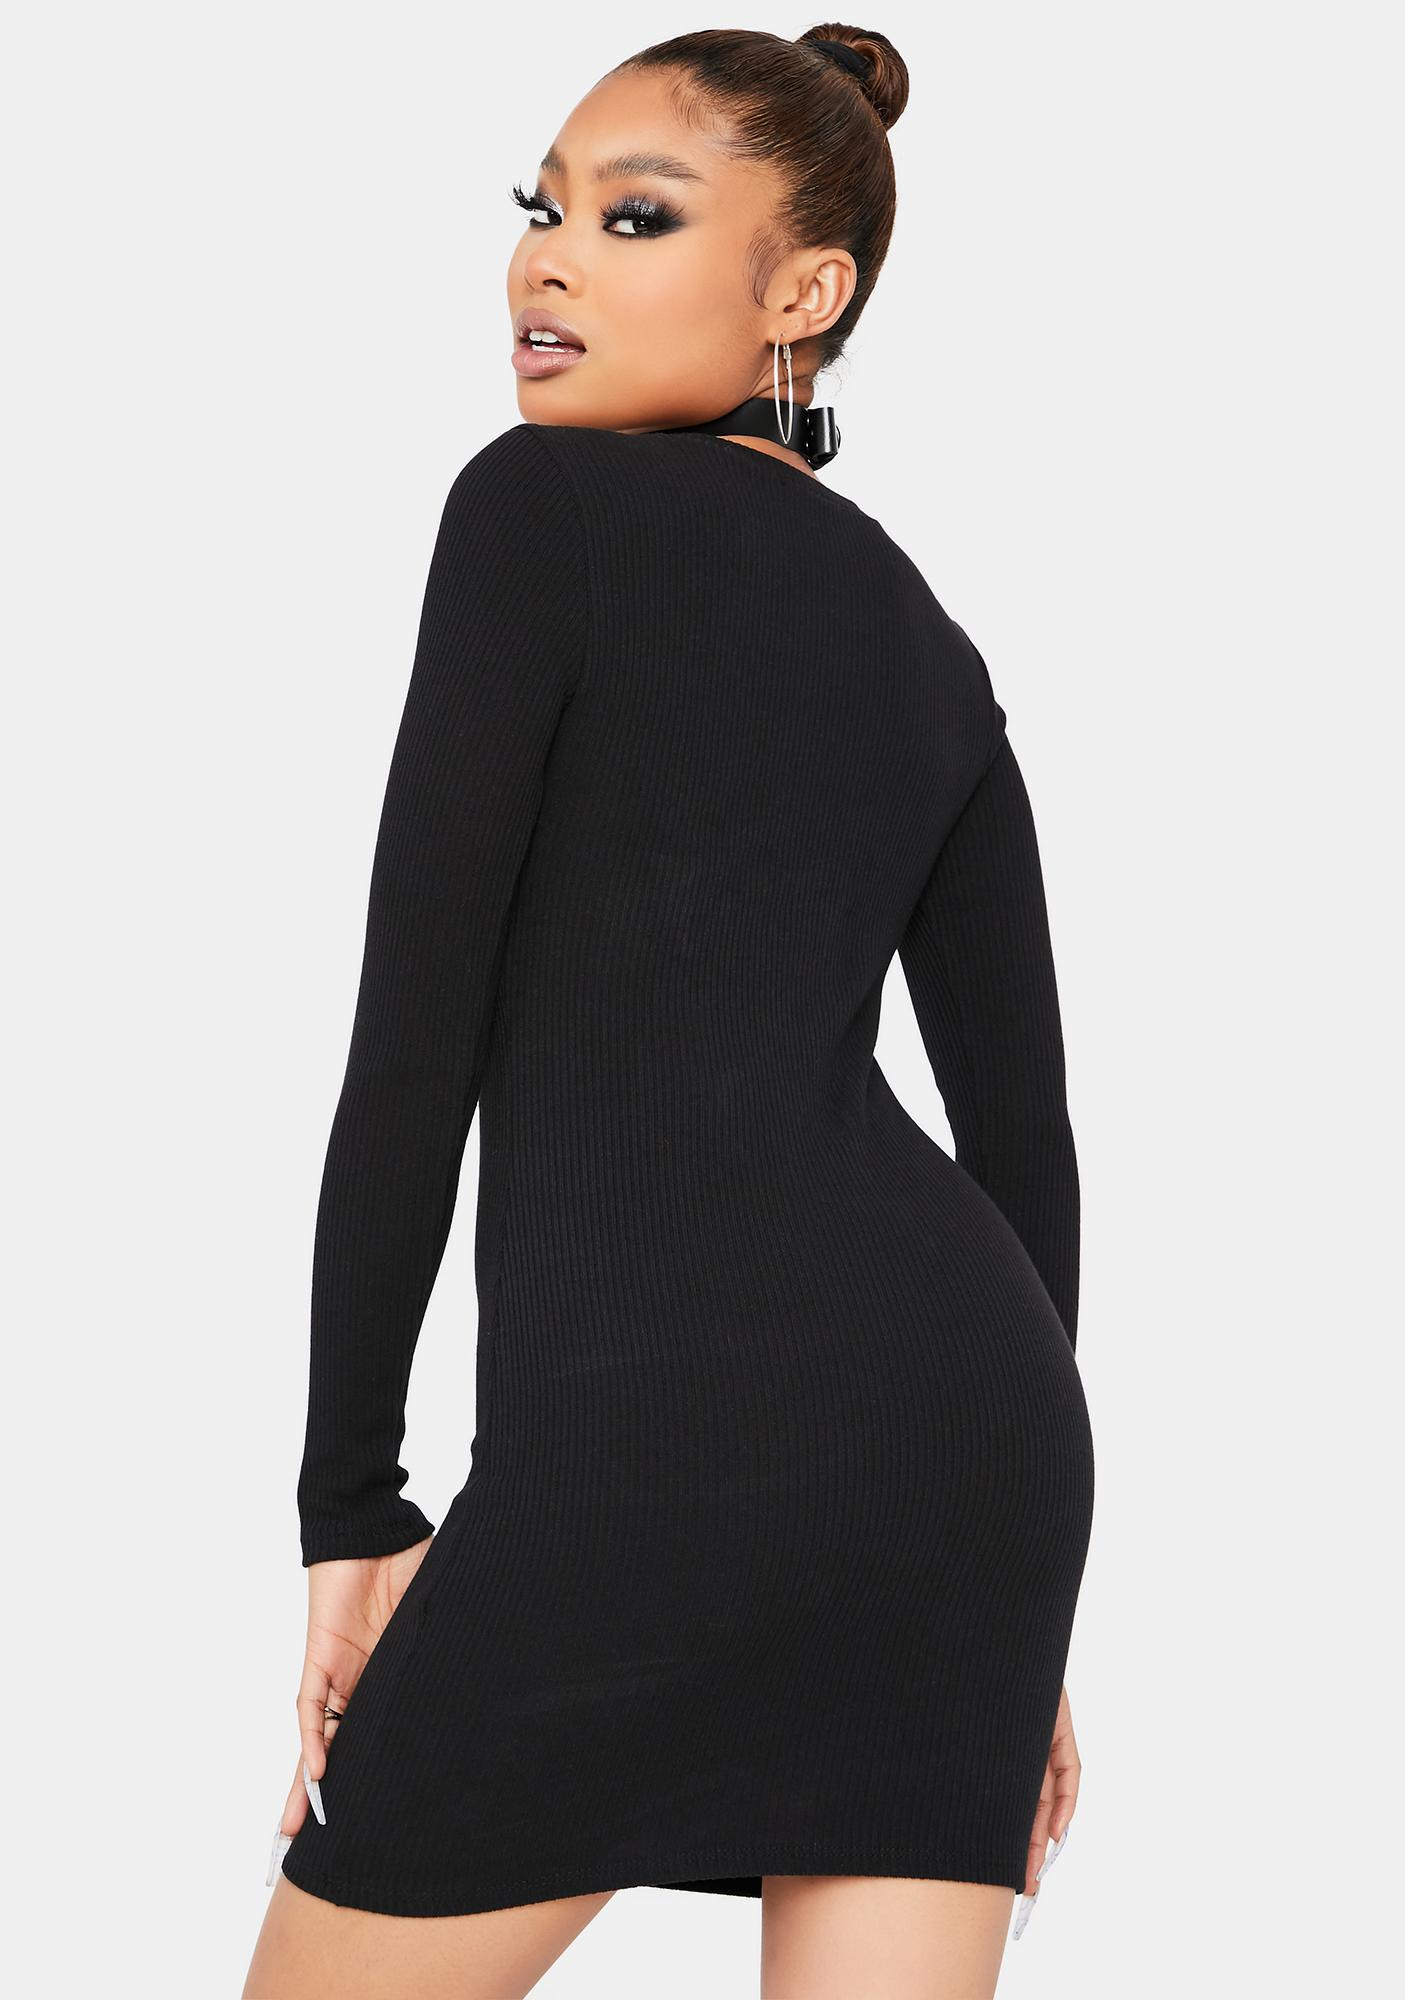 Dark Back 2 Back Long Sleeve Mini Dress